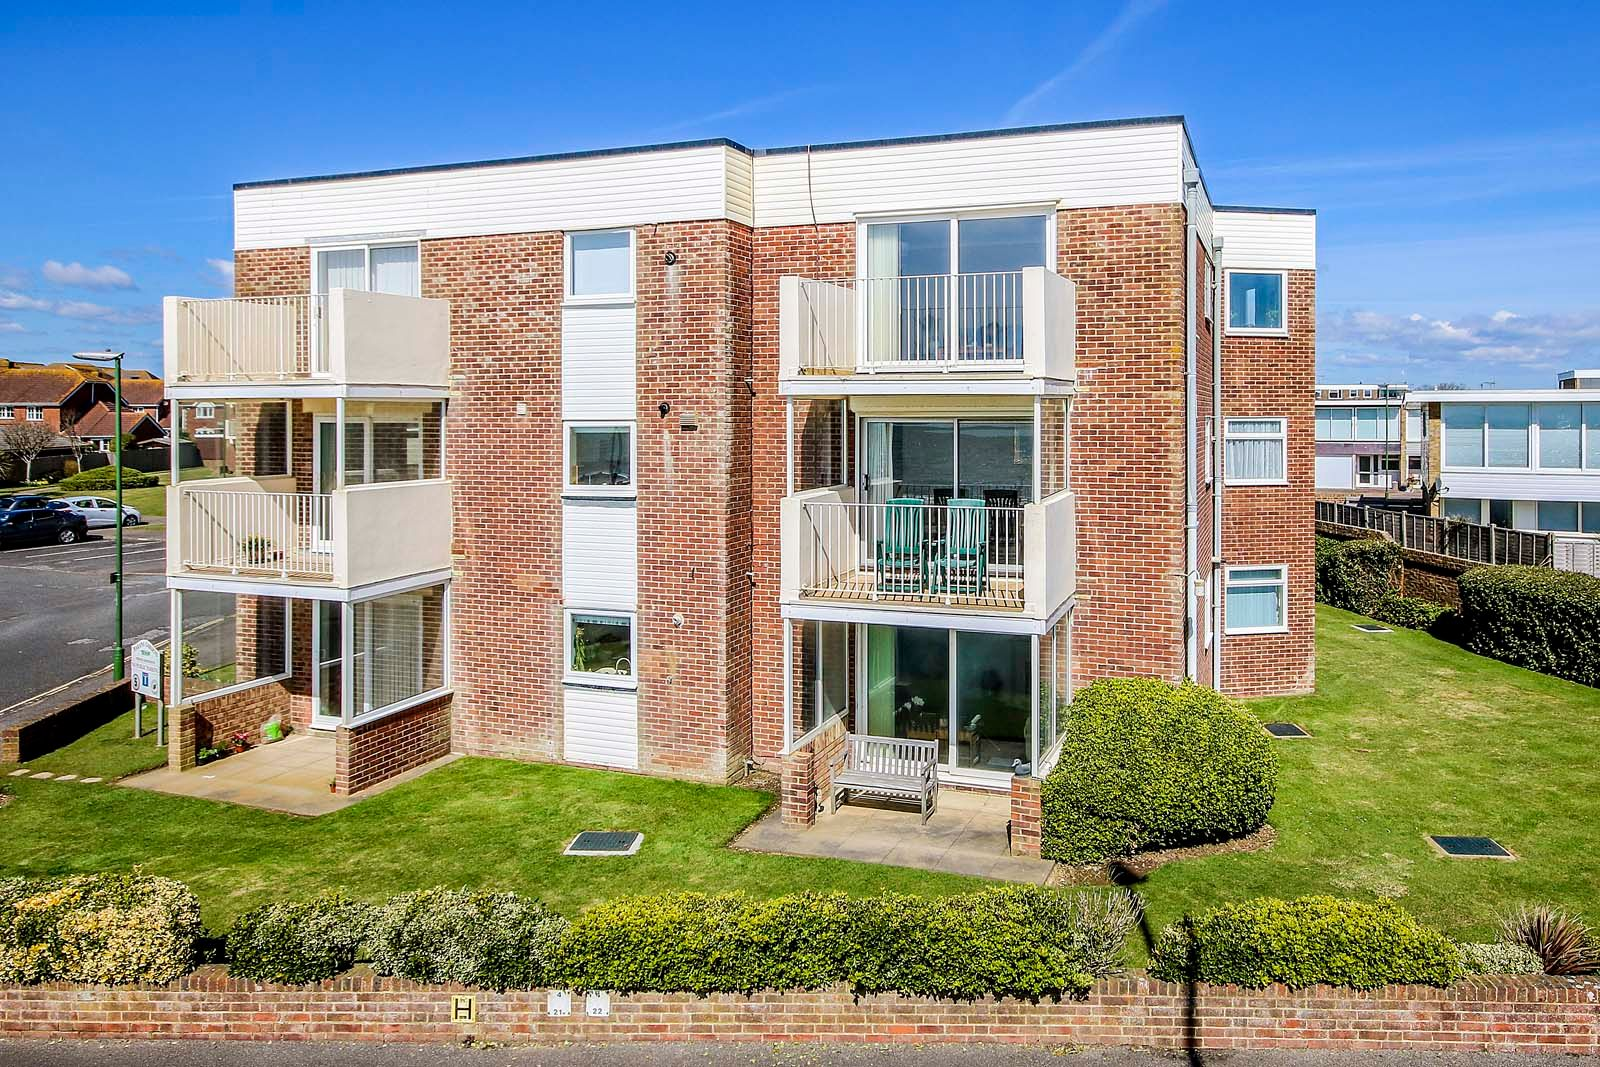 2 bed Apartment for sale in Rustington - Elevated front (Property Image 0)